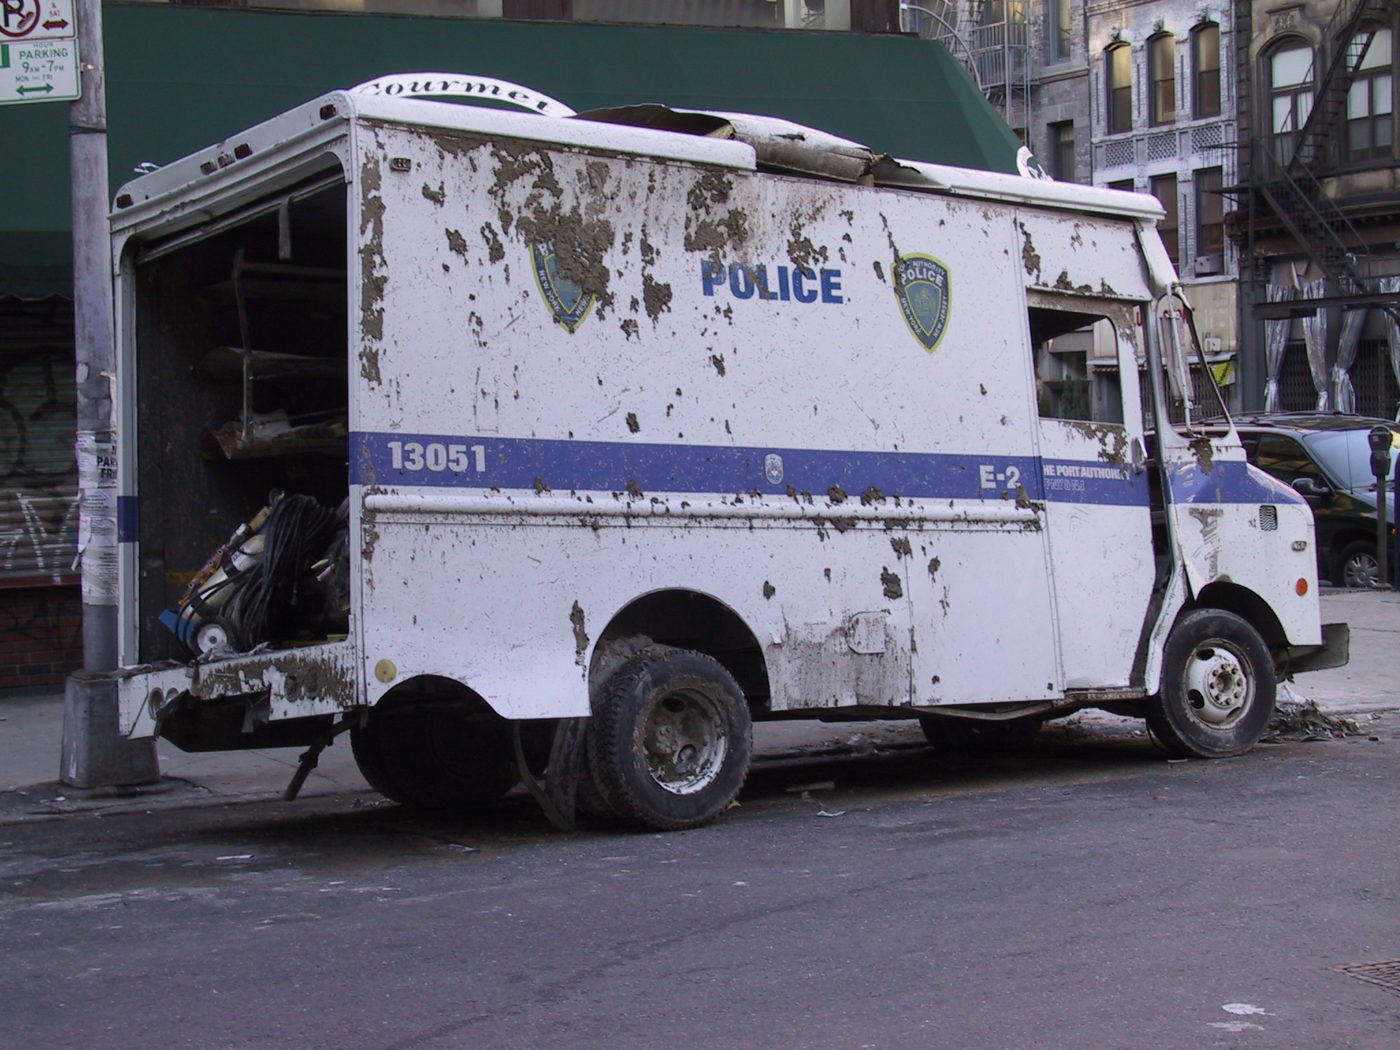 Port Authority Police Van Dented and Covered in Dirt and Dust from the Fallout.JPG